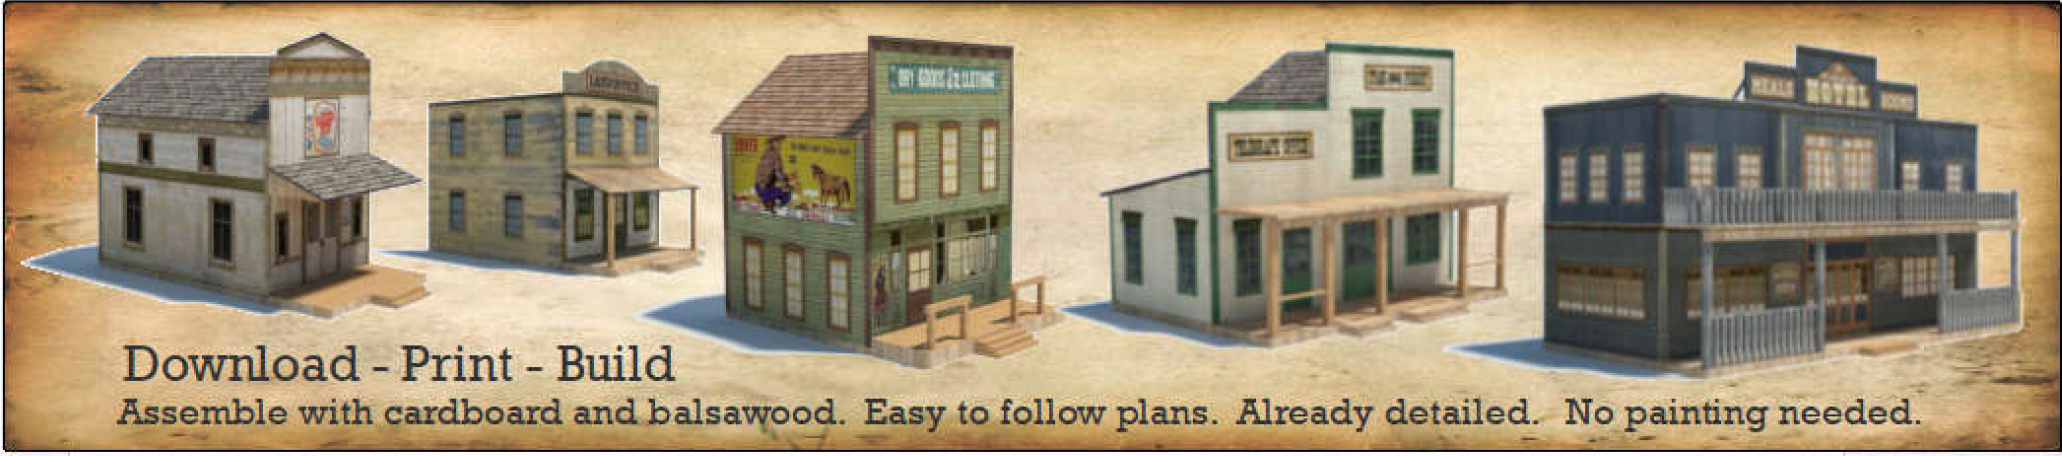 construct 5 old west town scale paper model buildings